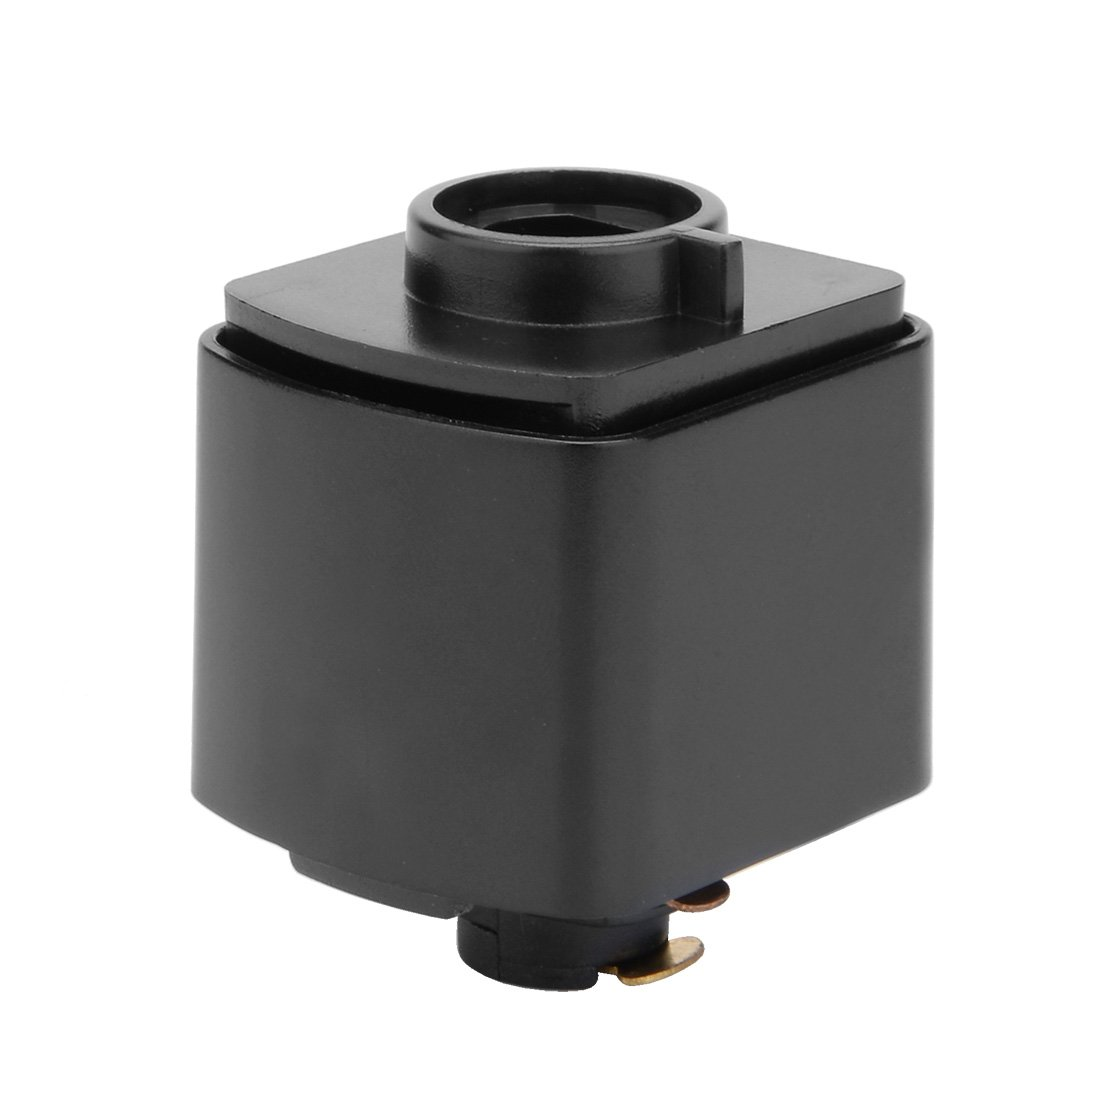 uxcell 3-Wire Track Rail Joint Connector Lighting Fittings GT-306 Black a17053100ux0062